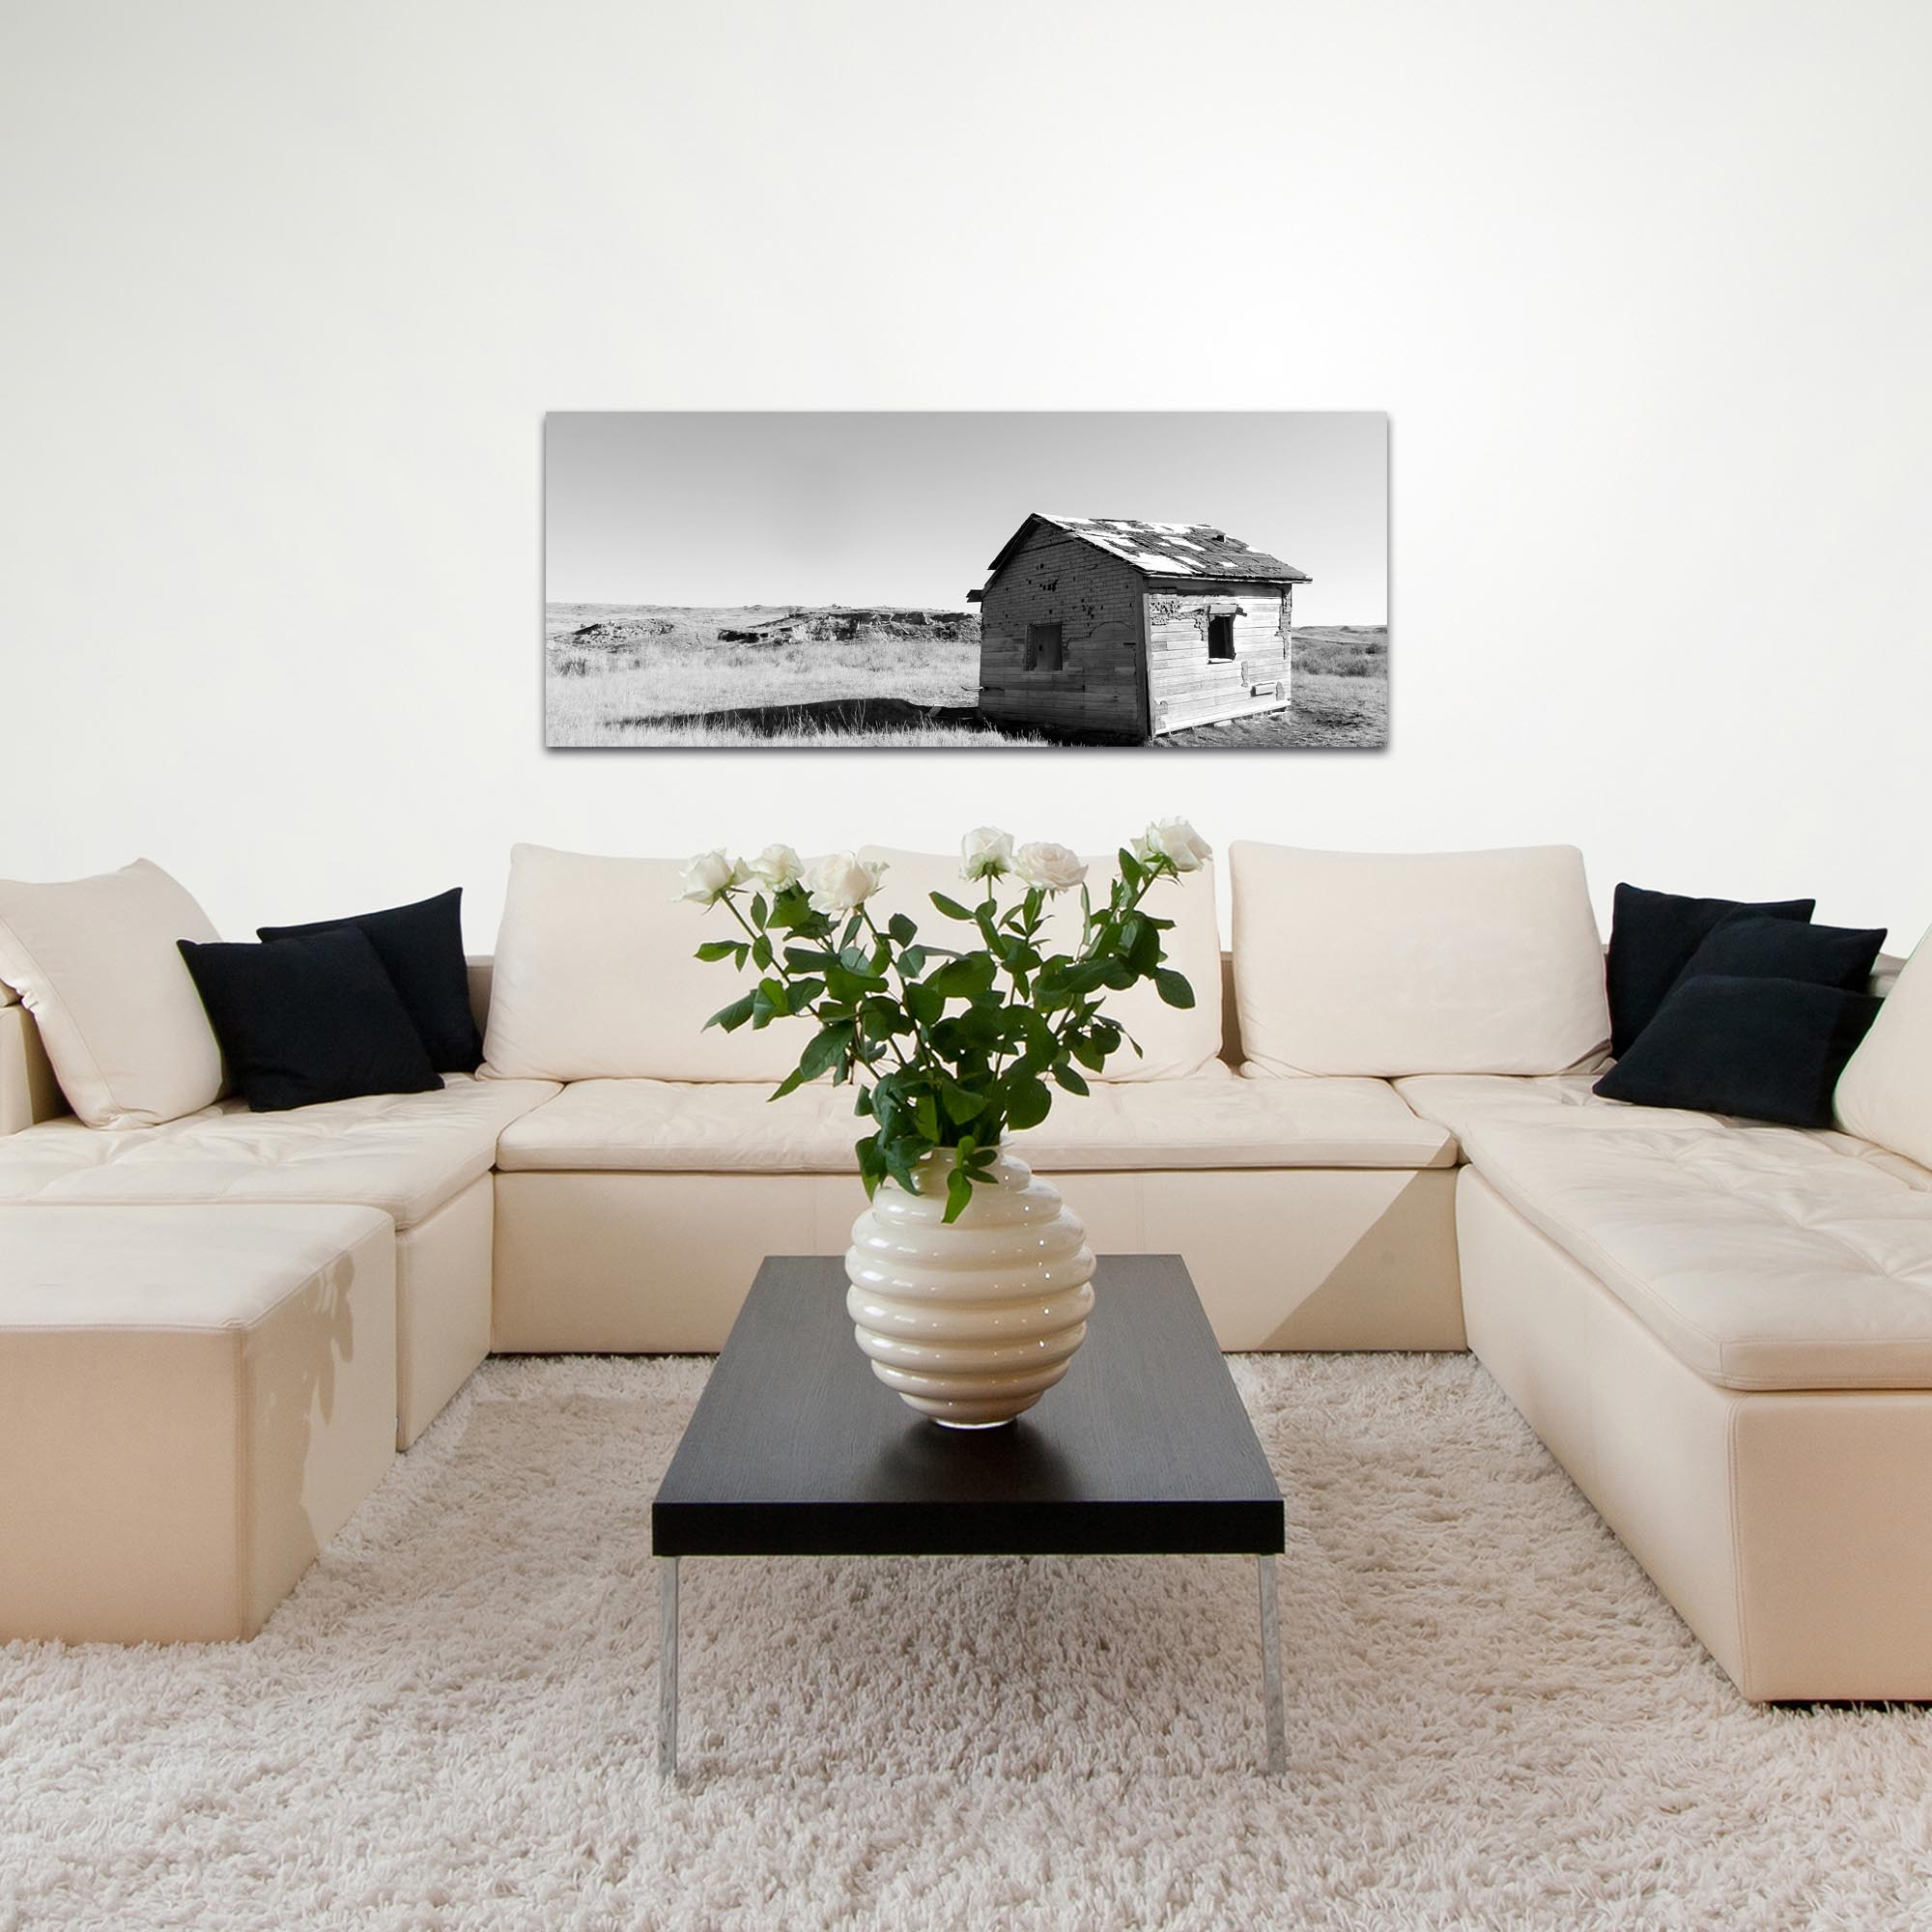 Western Wall Art 'The Shack' - American West Decor on Metal or Plexiglass - Lifestyle View